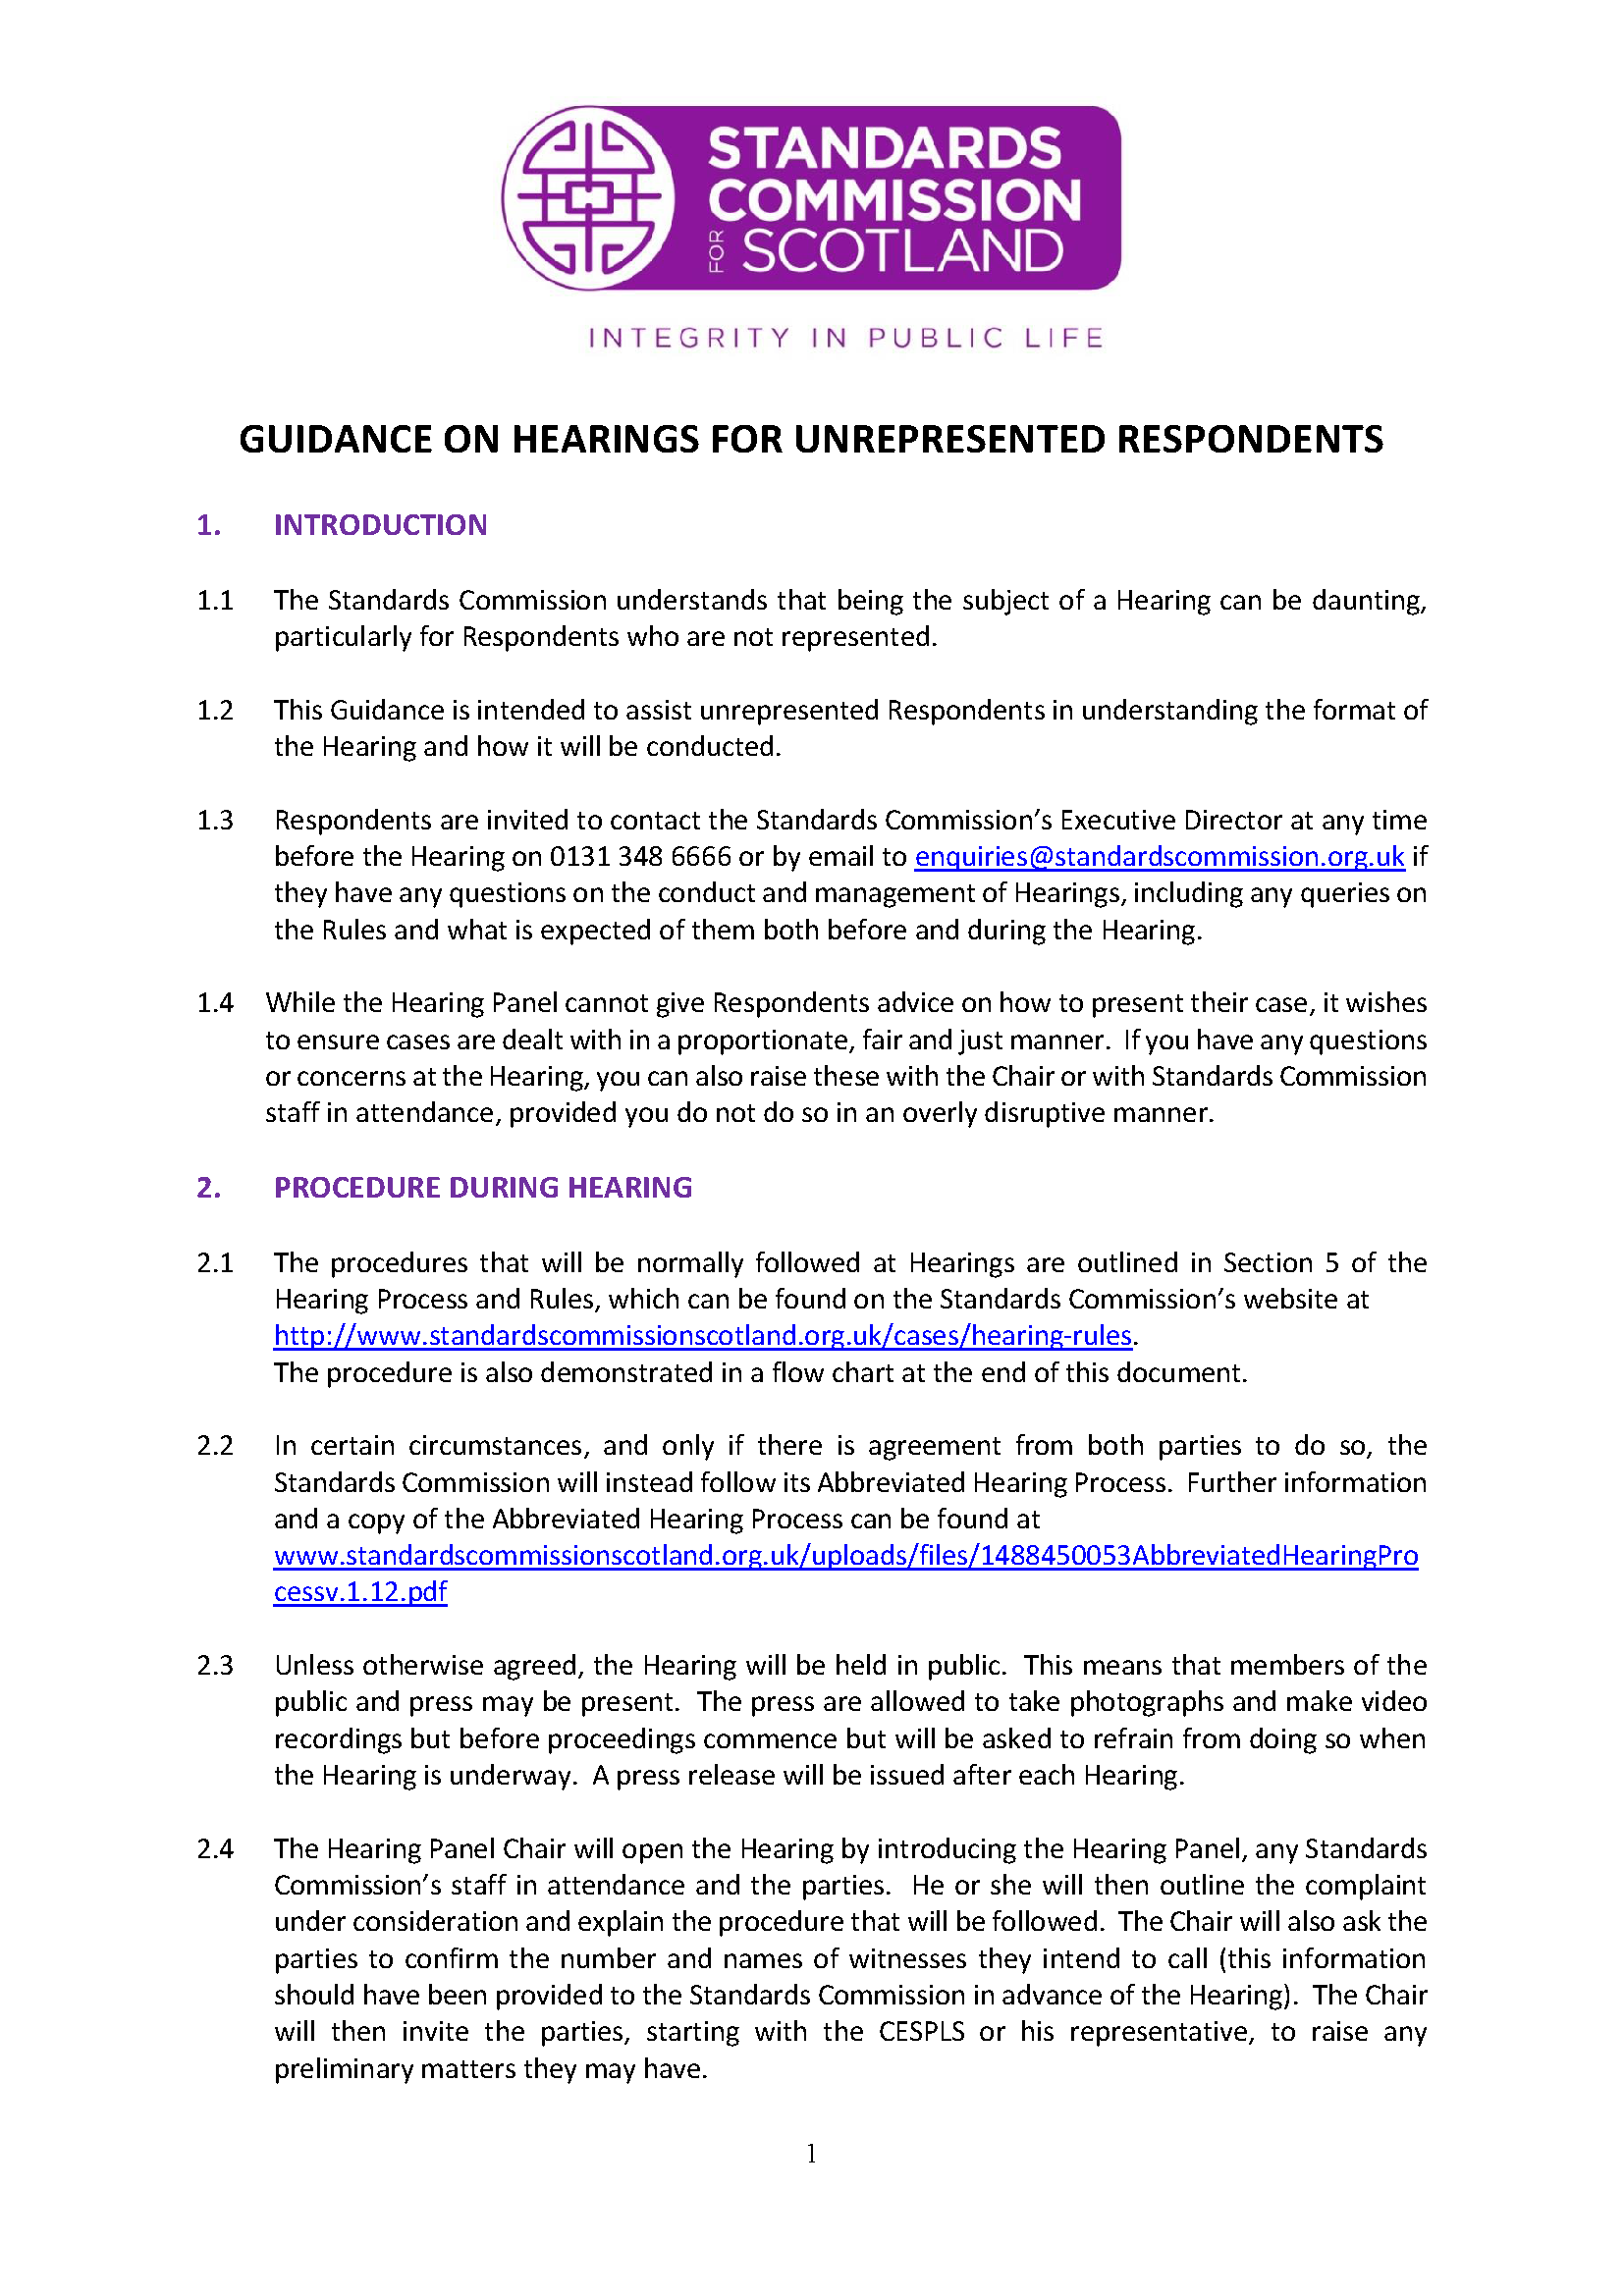 Guidance for Unrepresented Respondents